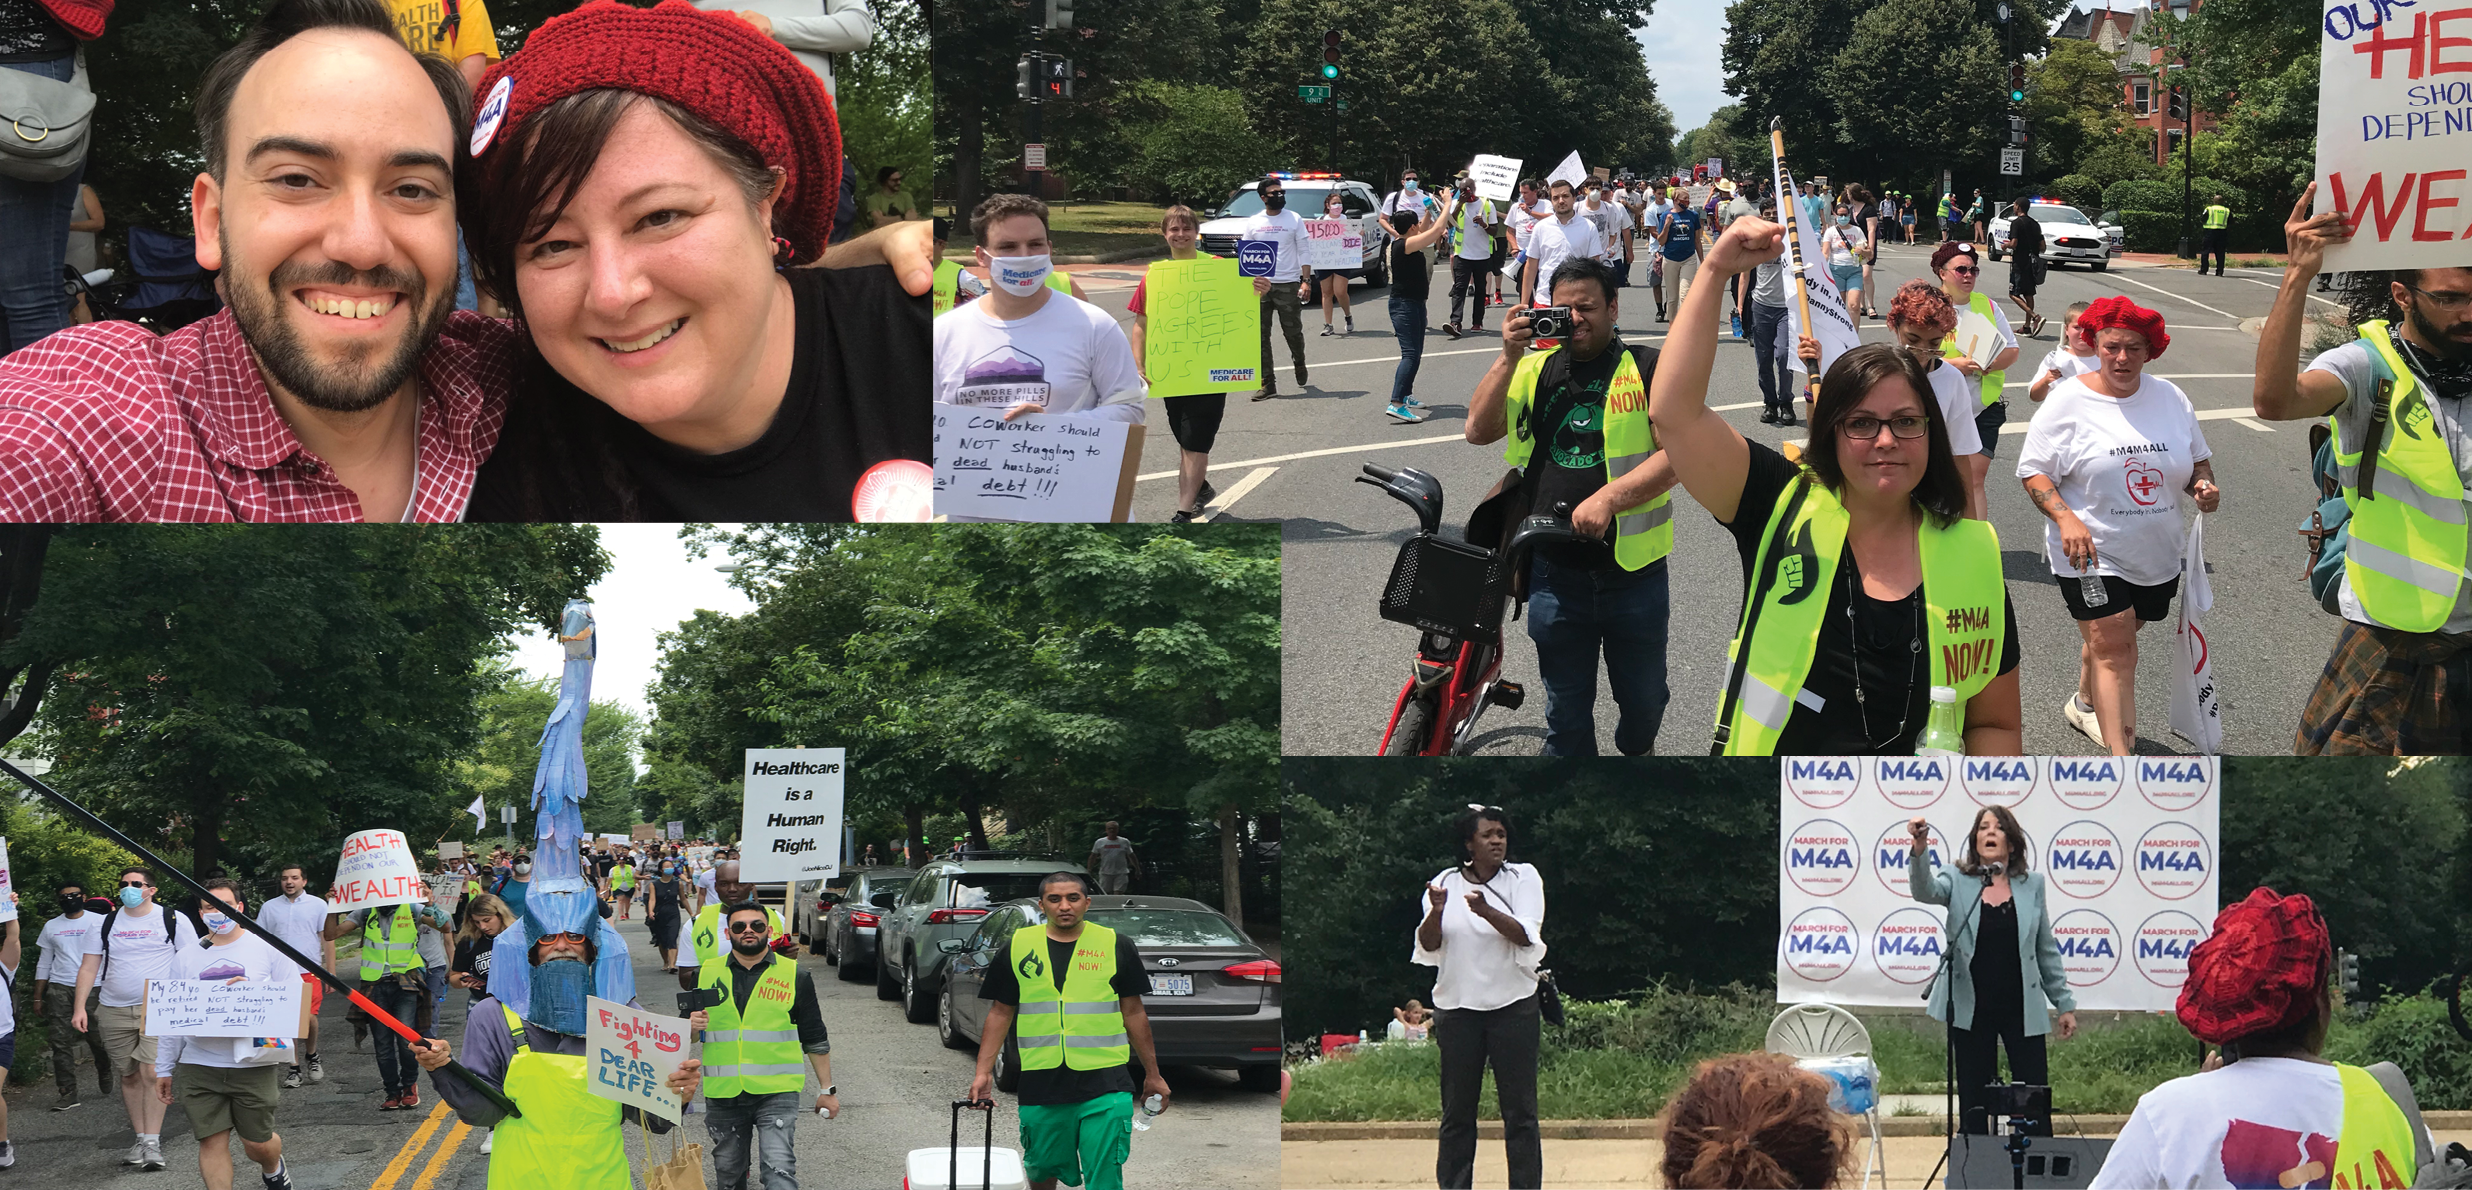 Recap of a Weekend Full of Medicare for All Rallies